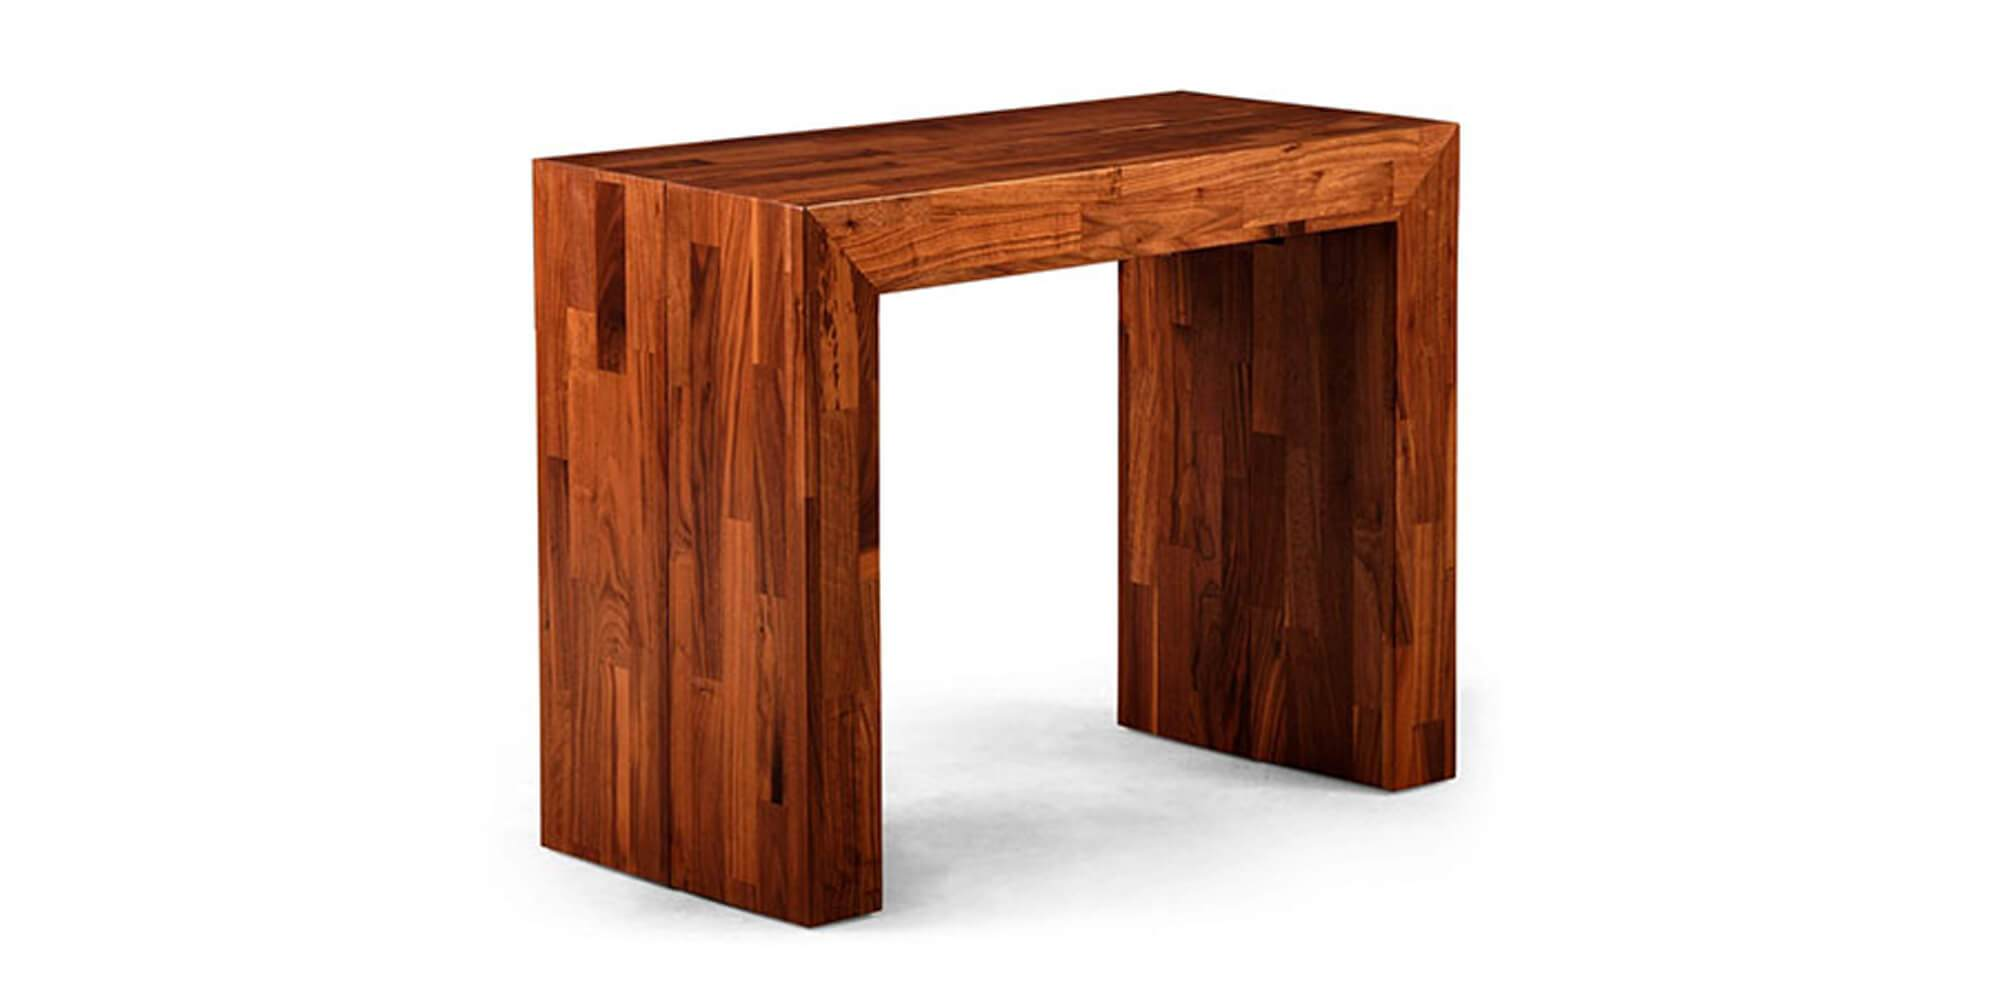 Transformer Table 2.0 + Chestnut